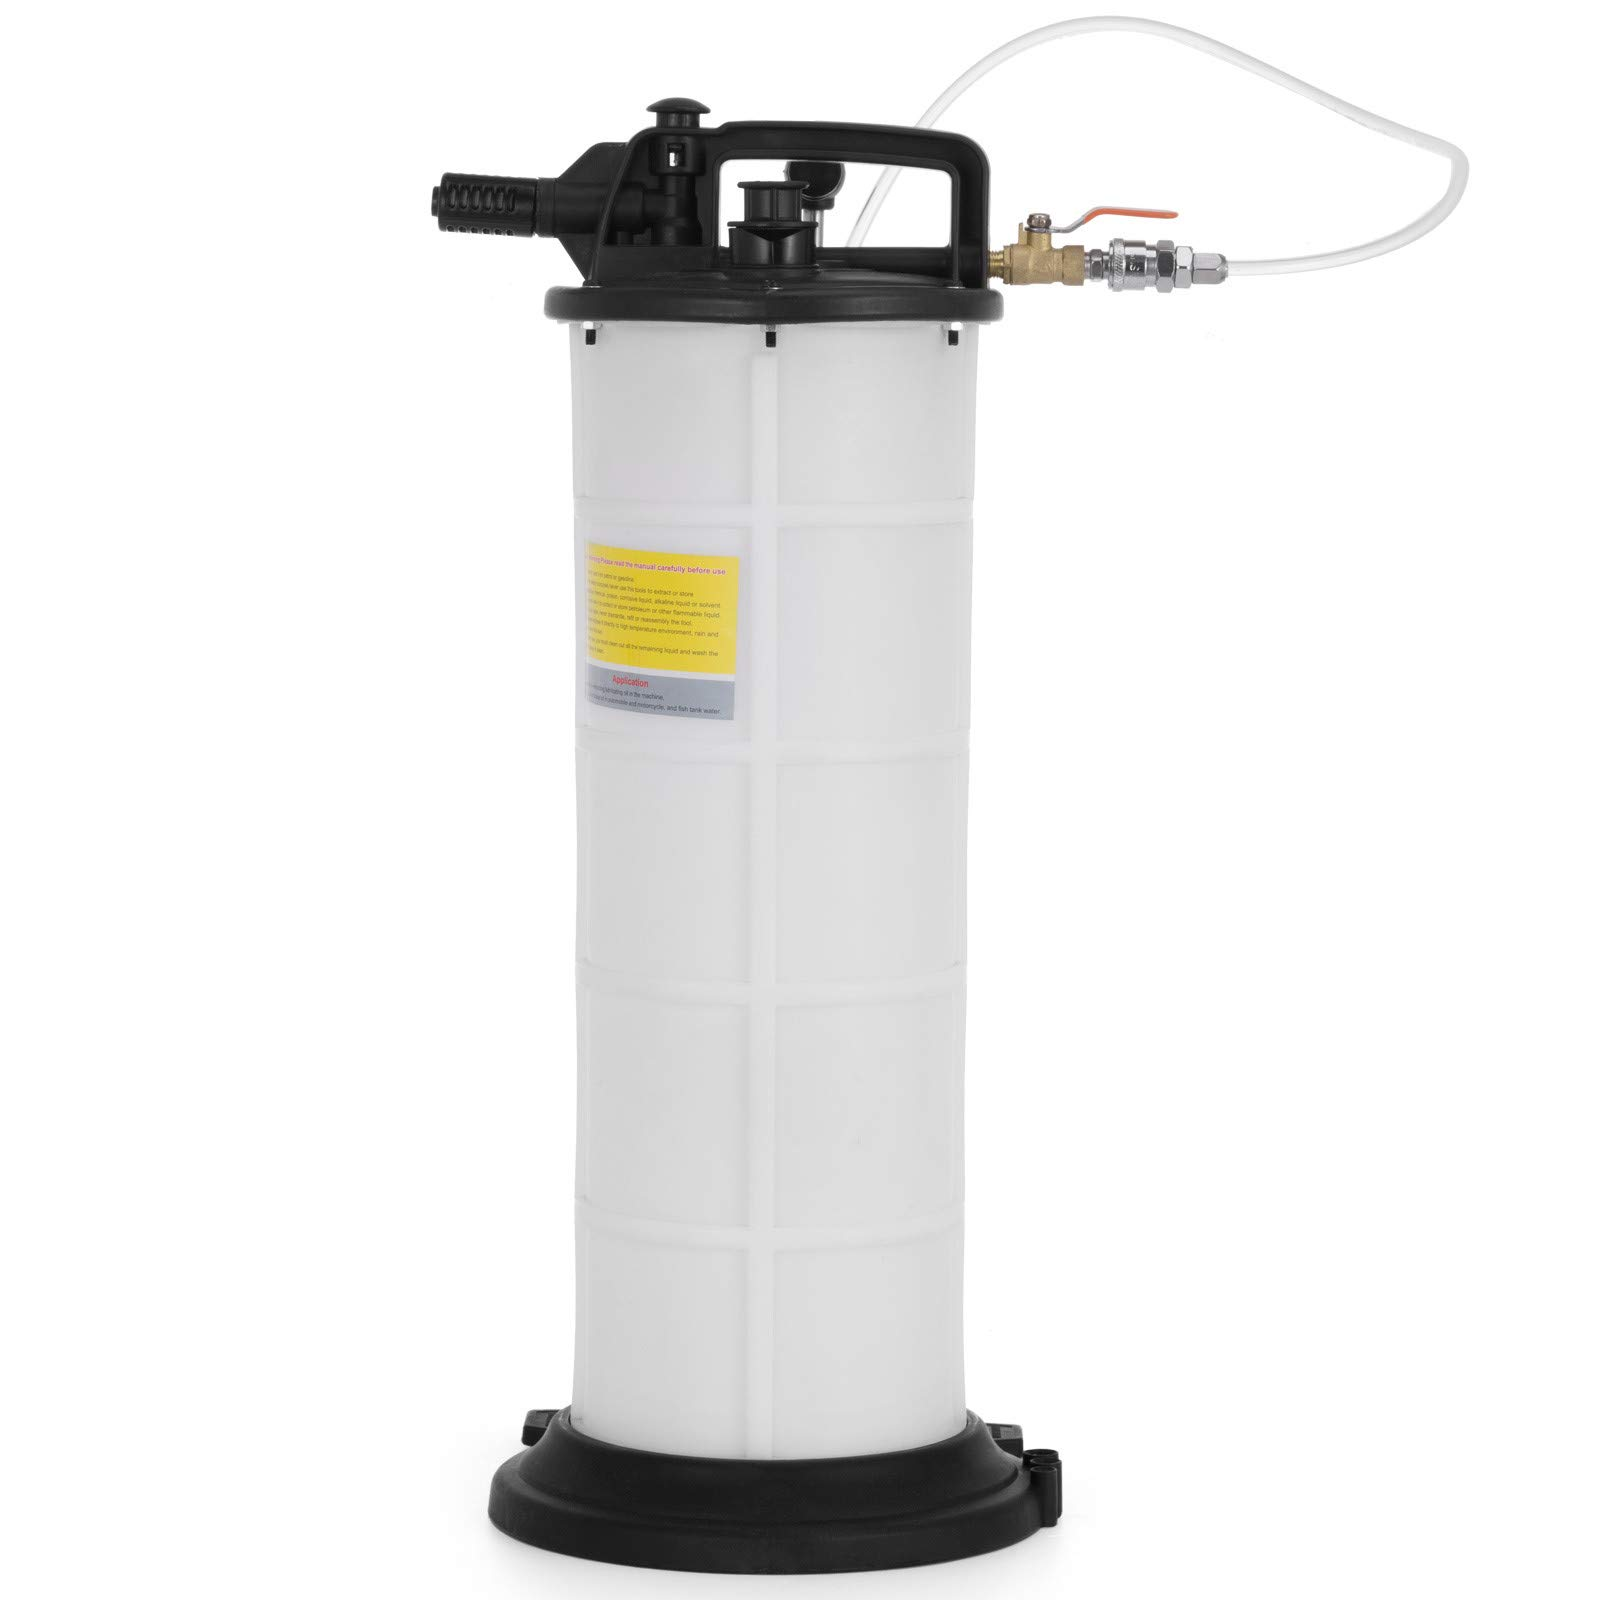 Happibuy Pneumatic Fluid Extractor 9.0 Liter Air Operated Oil Coolant Brake One 1 Man